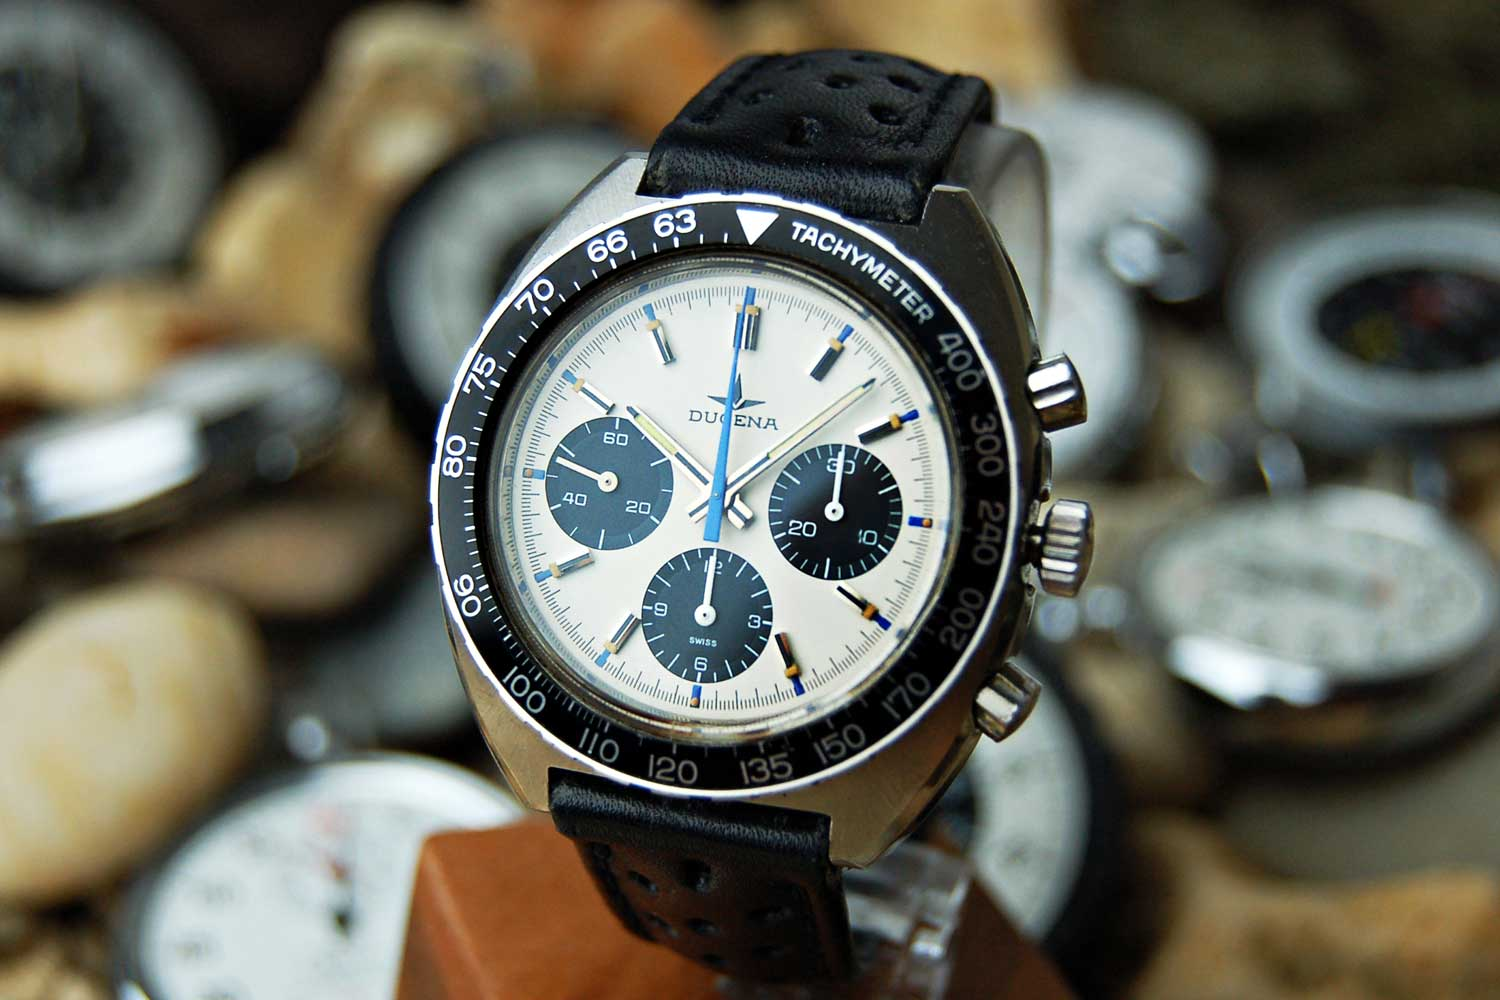 The Dugena Chronograph has the same style cues as the racing Heuer watches from the 1960s (Image: Alistair Gibbons/ATGVintageWatches.com)